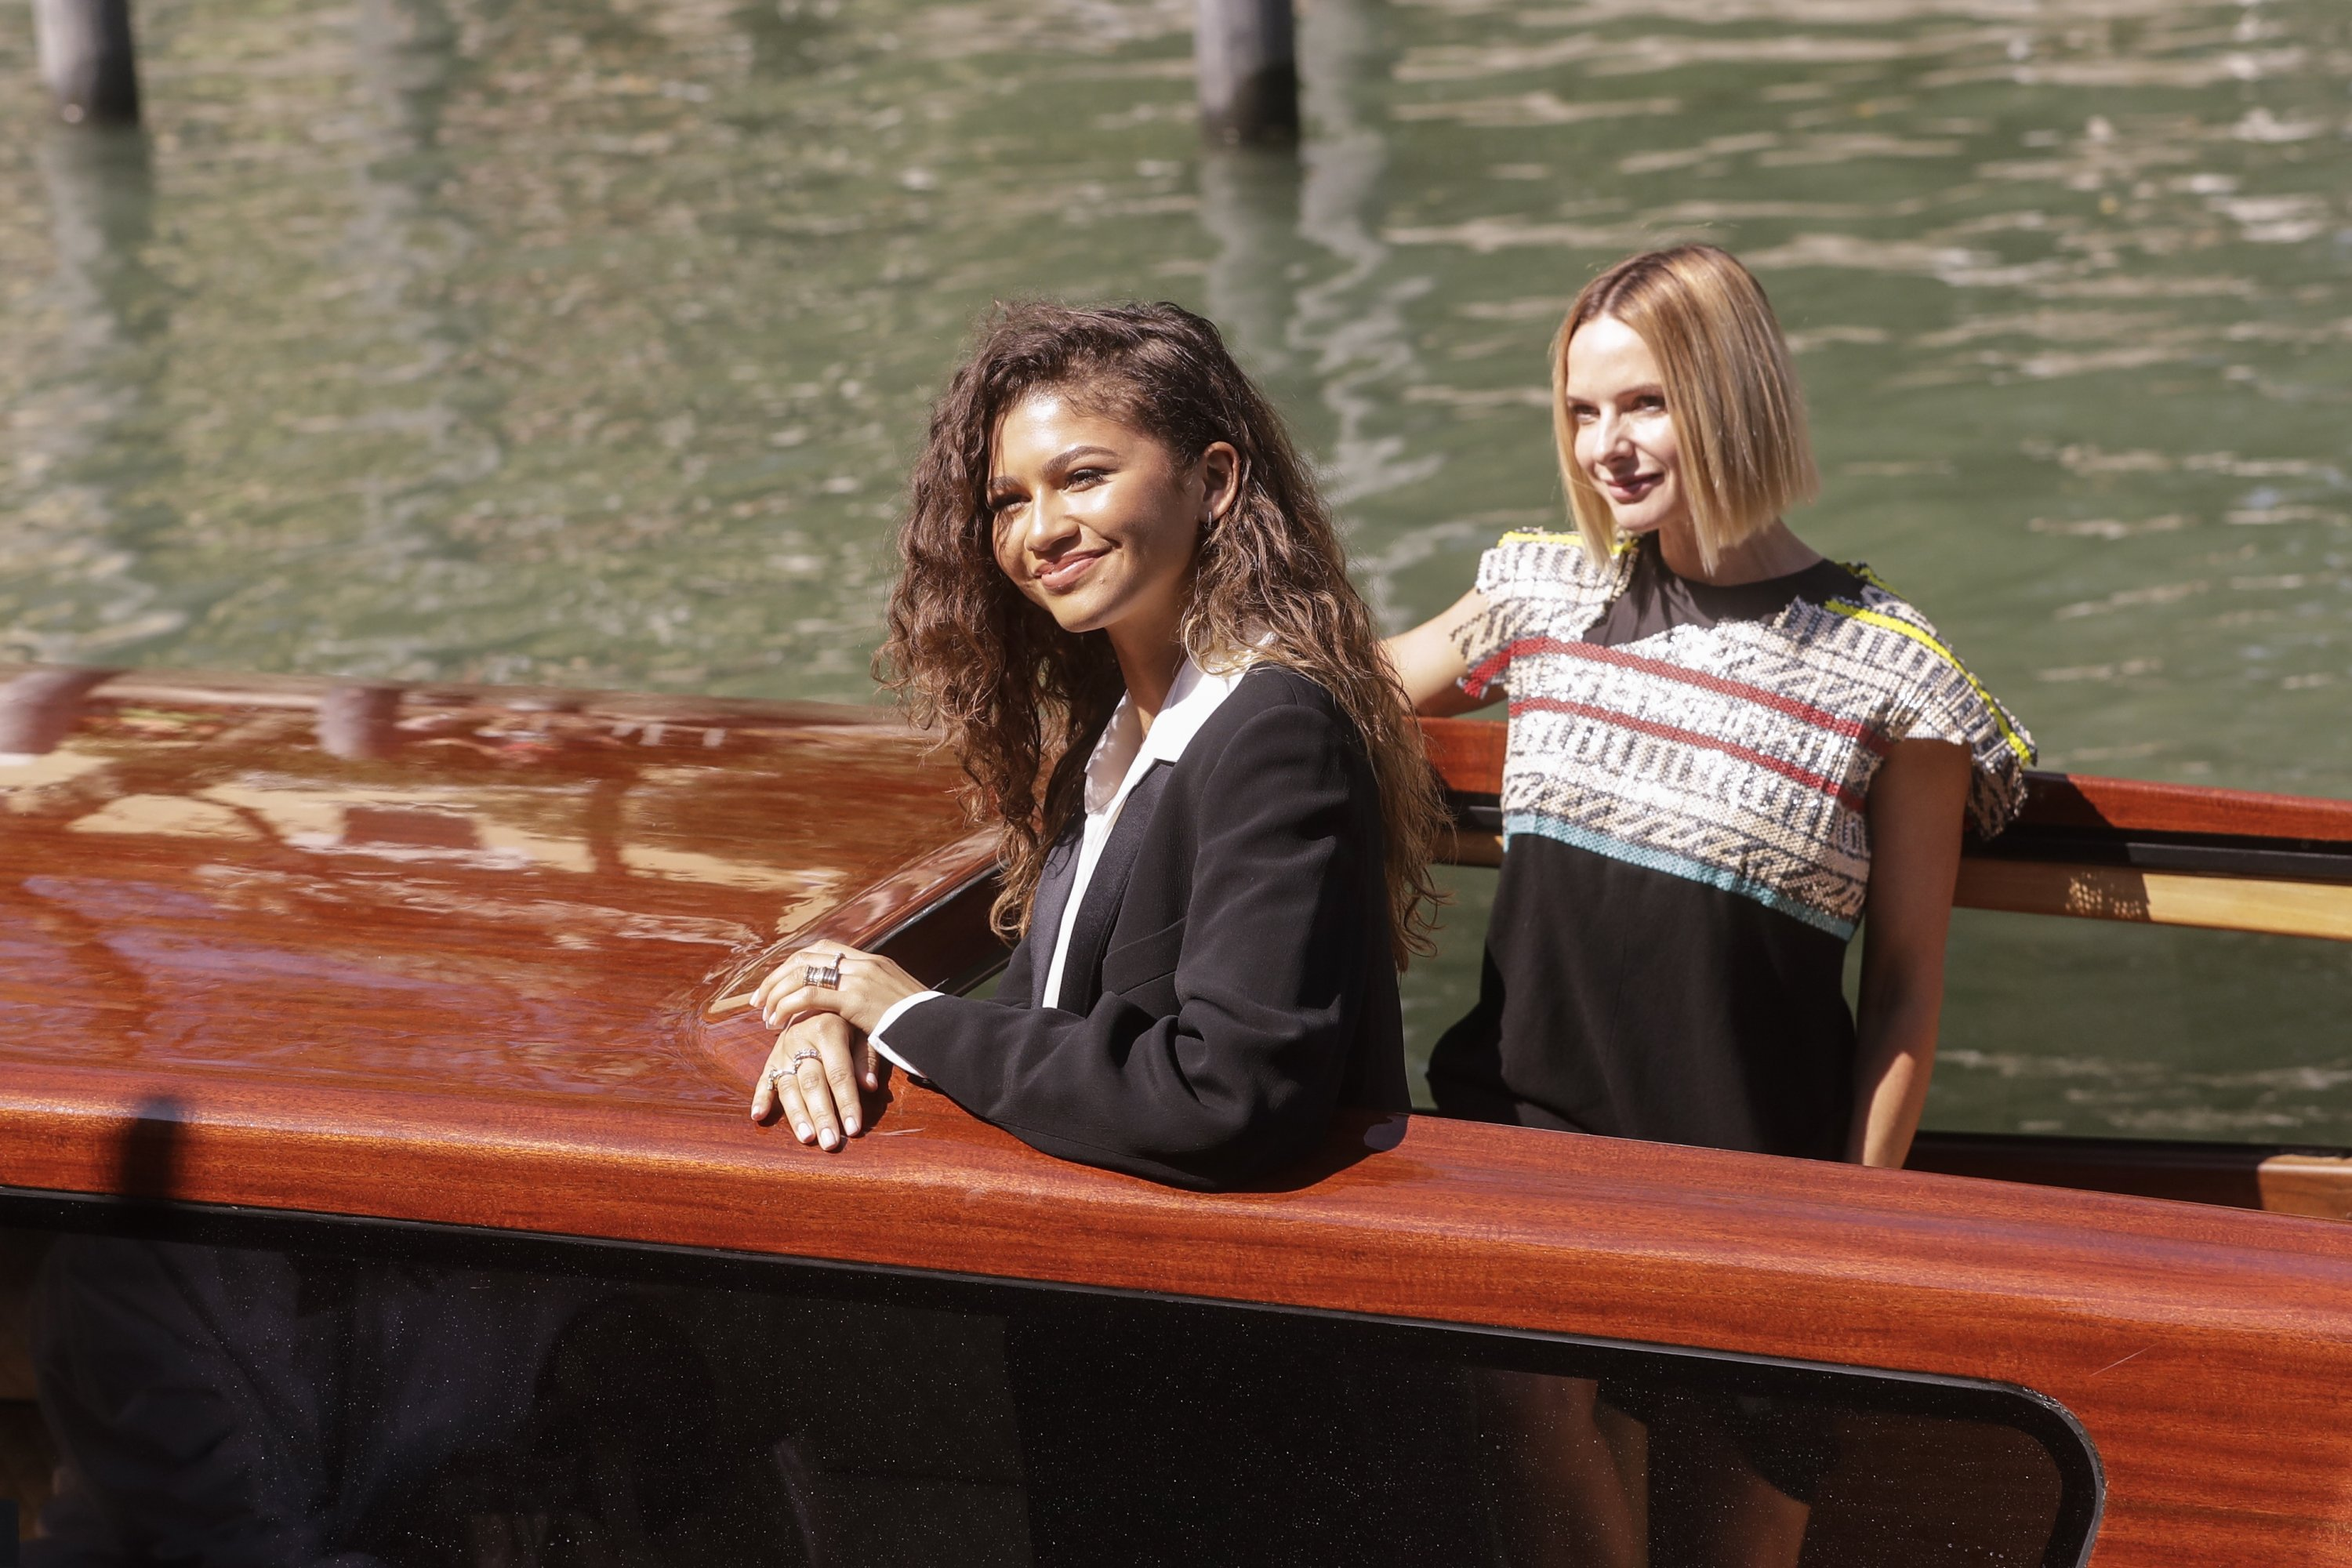 """Zendaya (L) and Rebecca Ferguson arrive for the photocall of the film """"Dune"""" at the 78th edition of the Venice Film Festival in Venice, Italy, Sept. 3, 2021. (AP Photo)"""